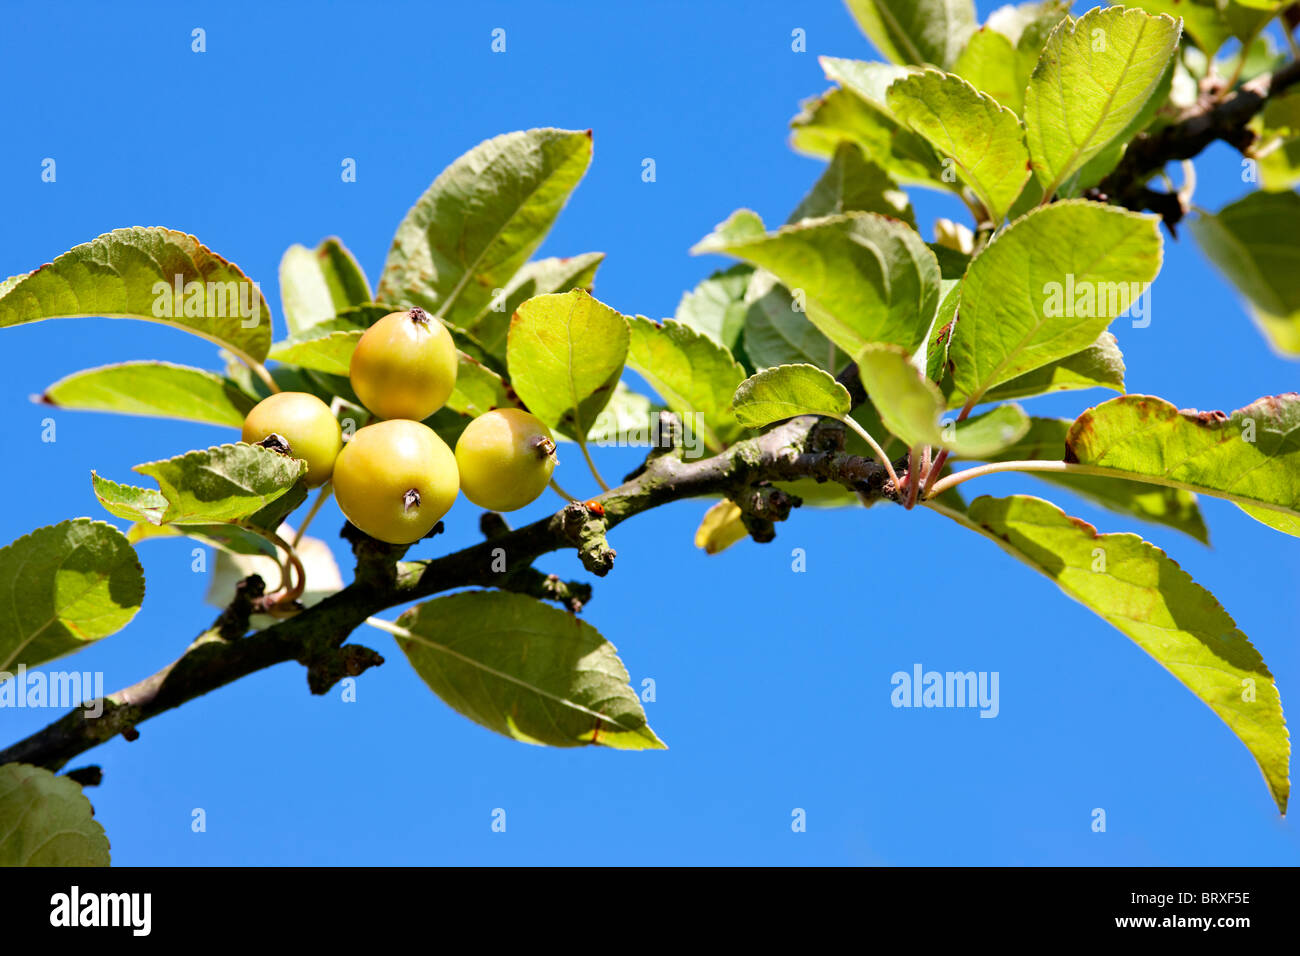 crabapples malus 39 golden hornet 39 stock photo royalty. Black Bedroom Furniture Sets. Home Design Ideas